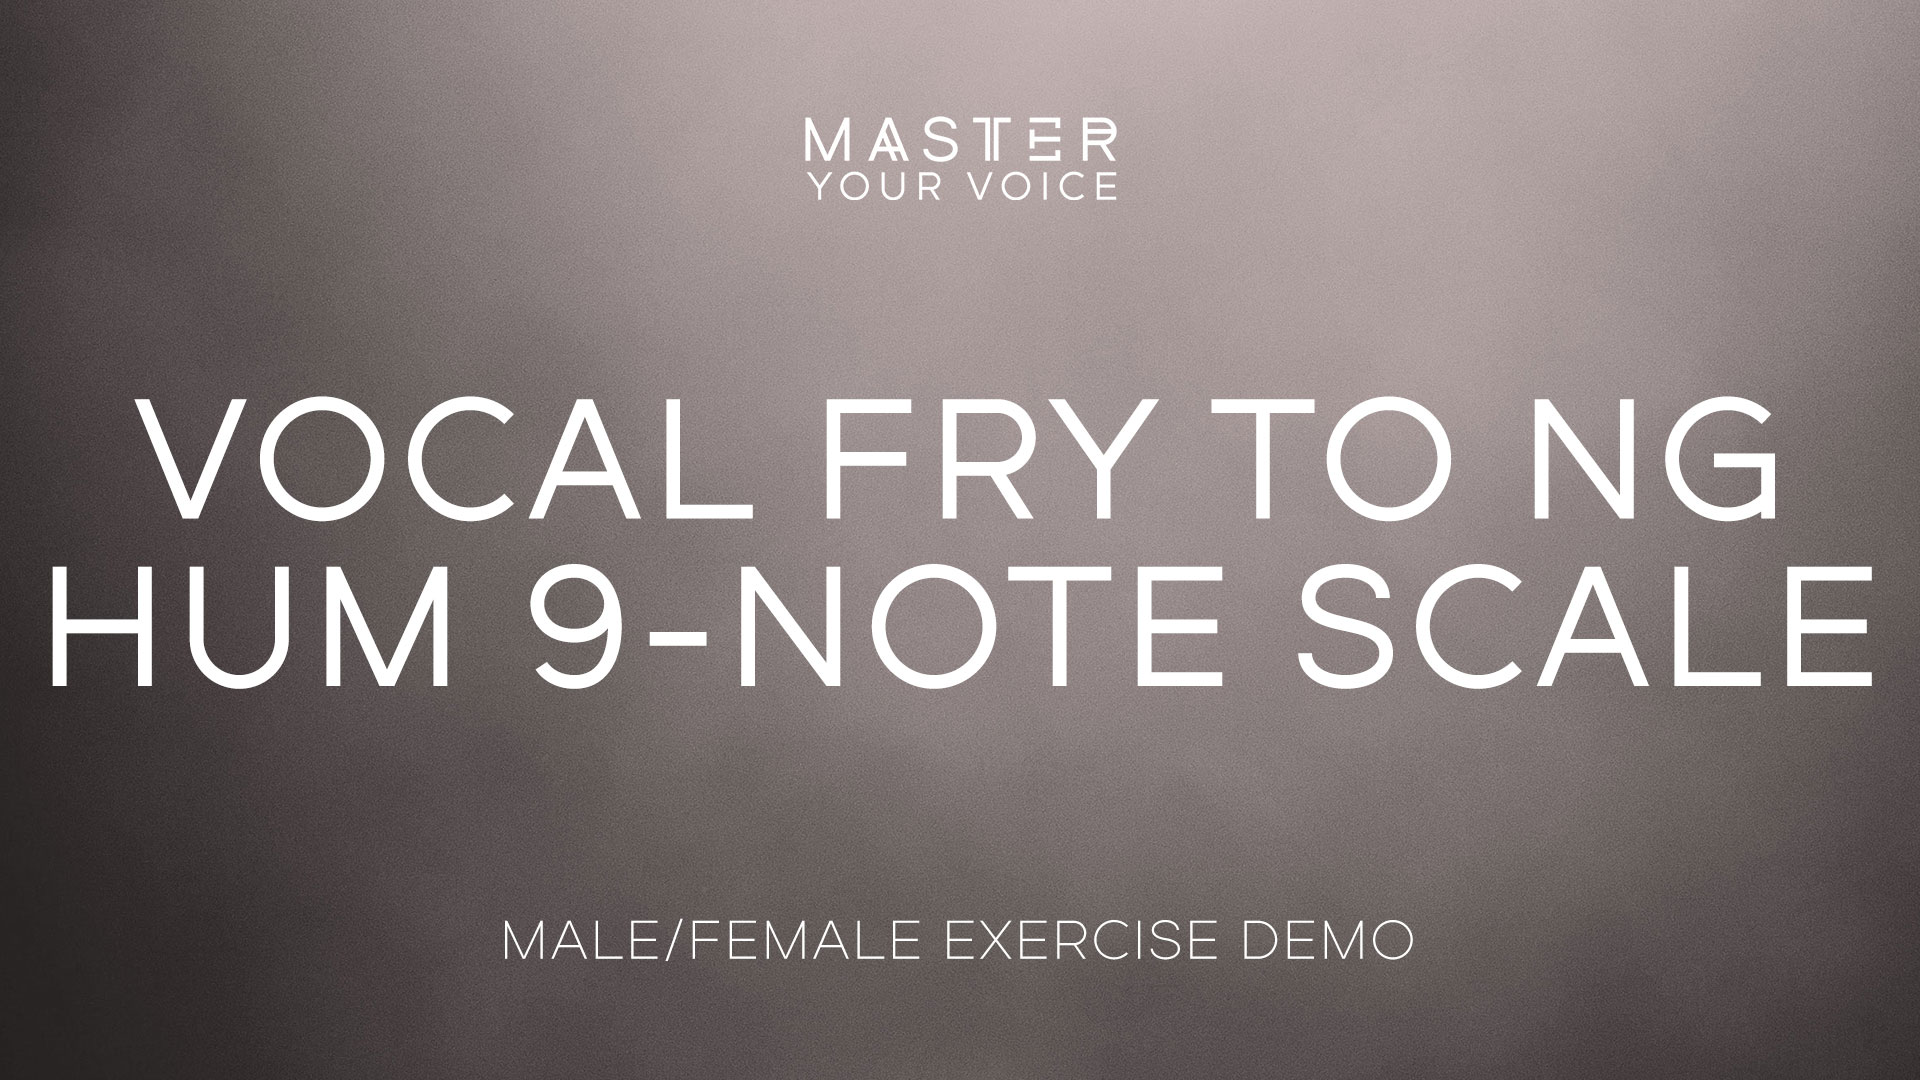 Vocal Fry to Ng Hum 9-Note Scale Exercise Demo